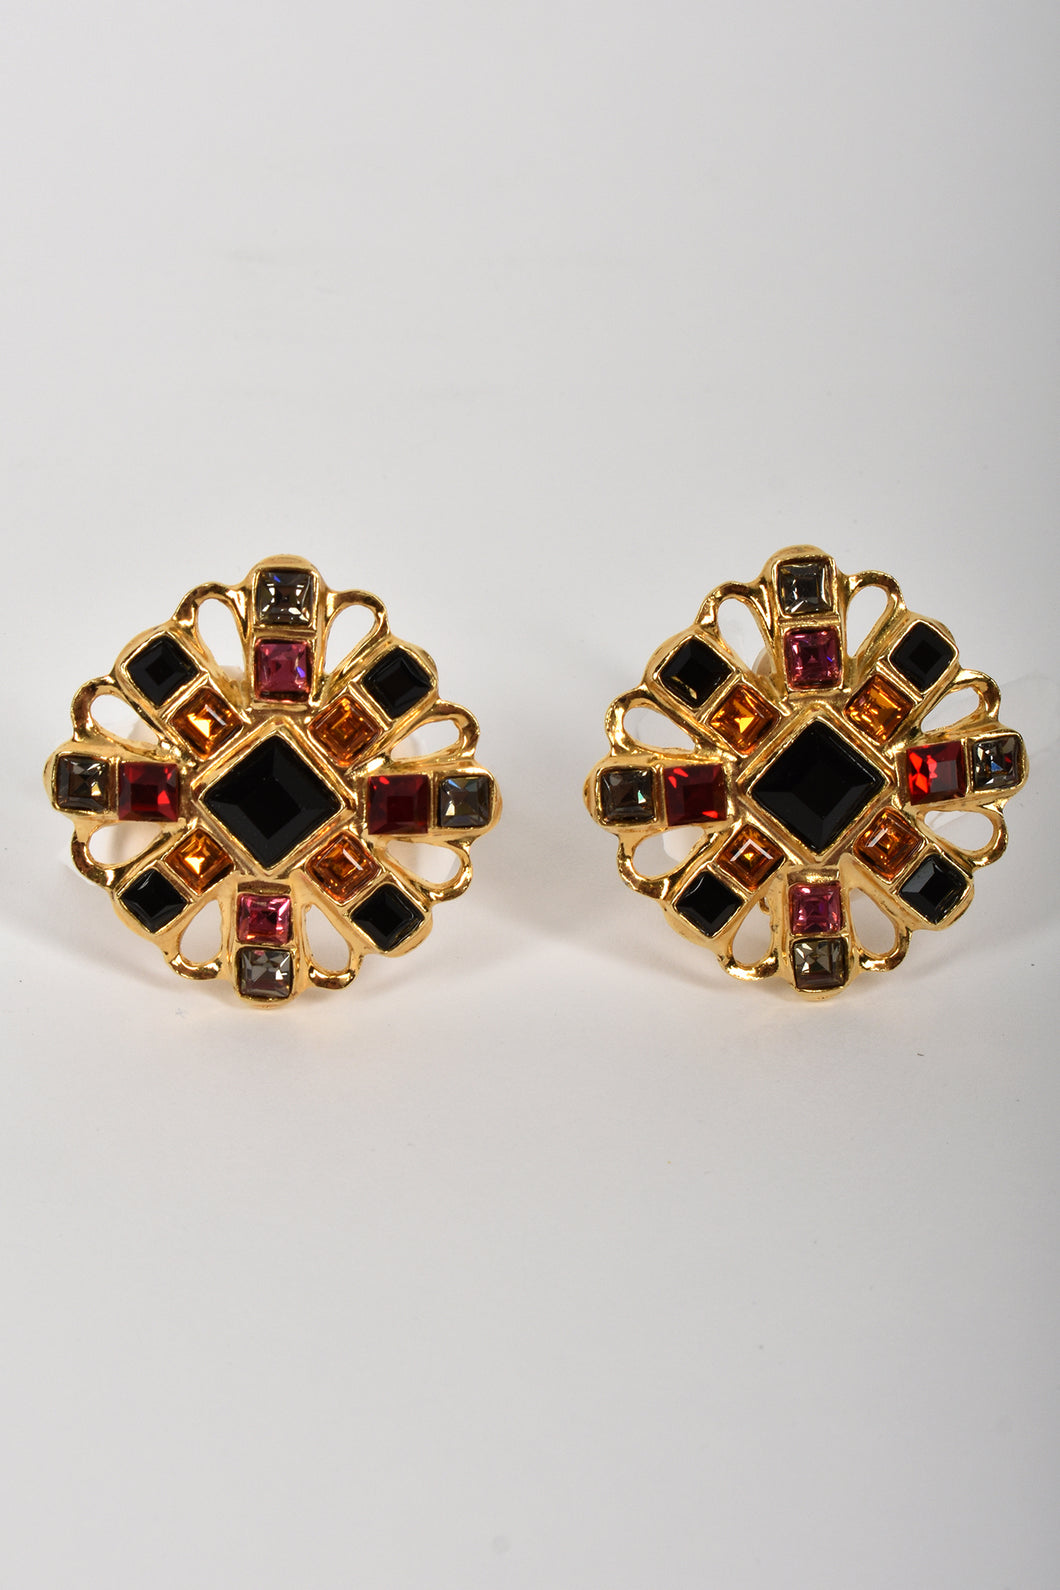 BUTLER & WILSON 80s clip-on earrings